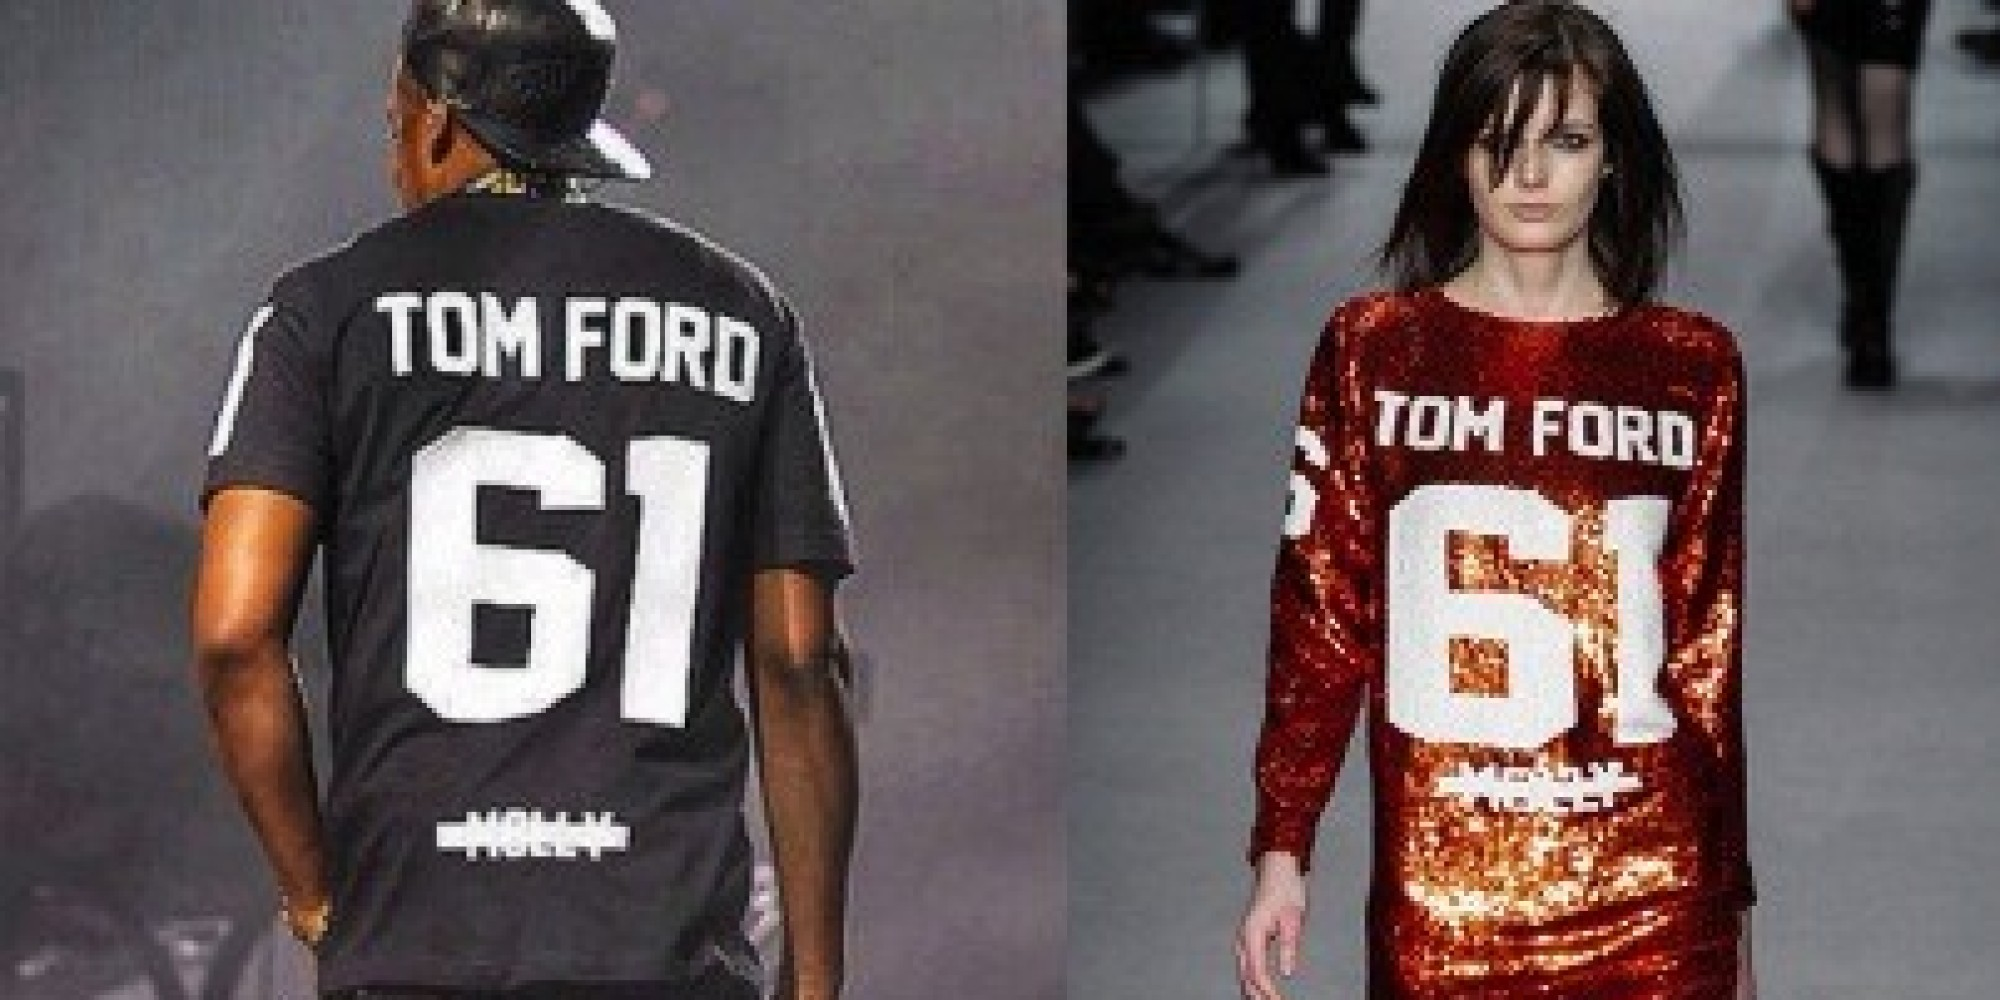 Tom Ford Calls Out Jay Z for Rocking Knockoff Tom Ford Shirt